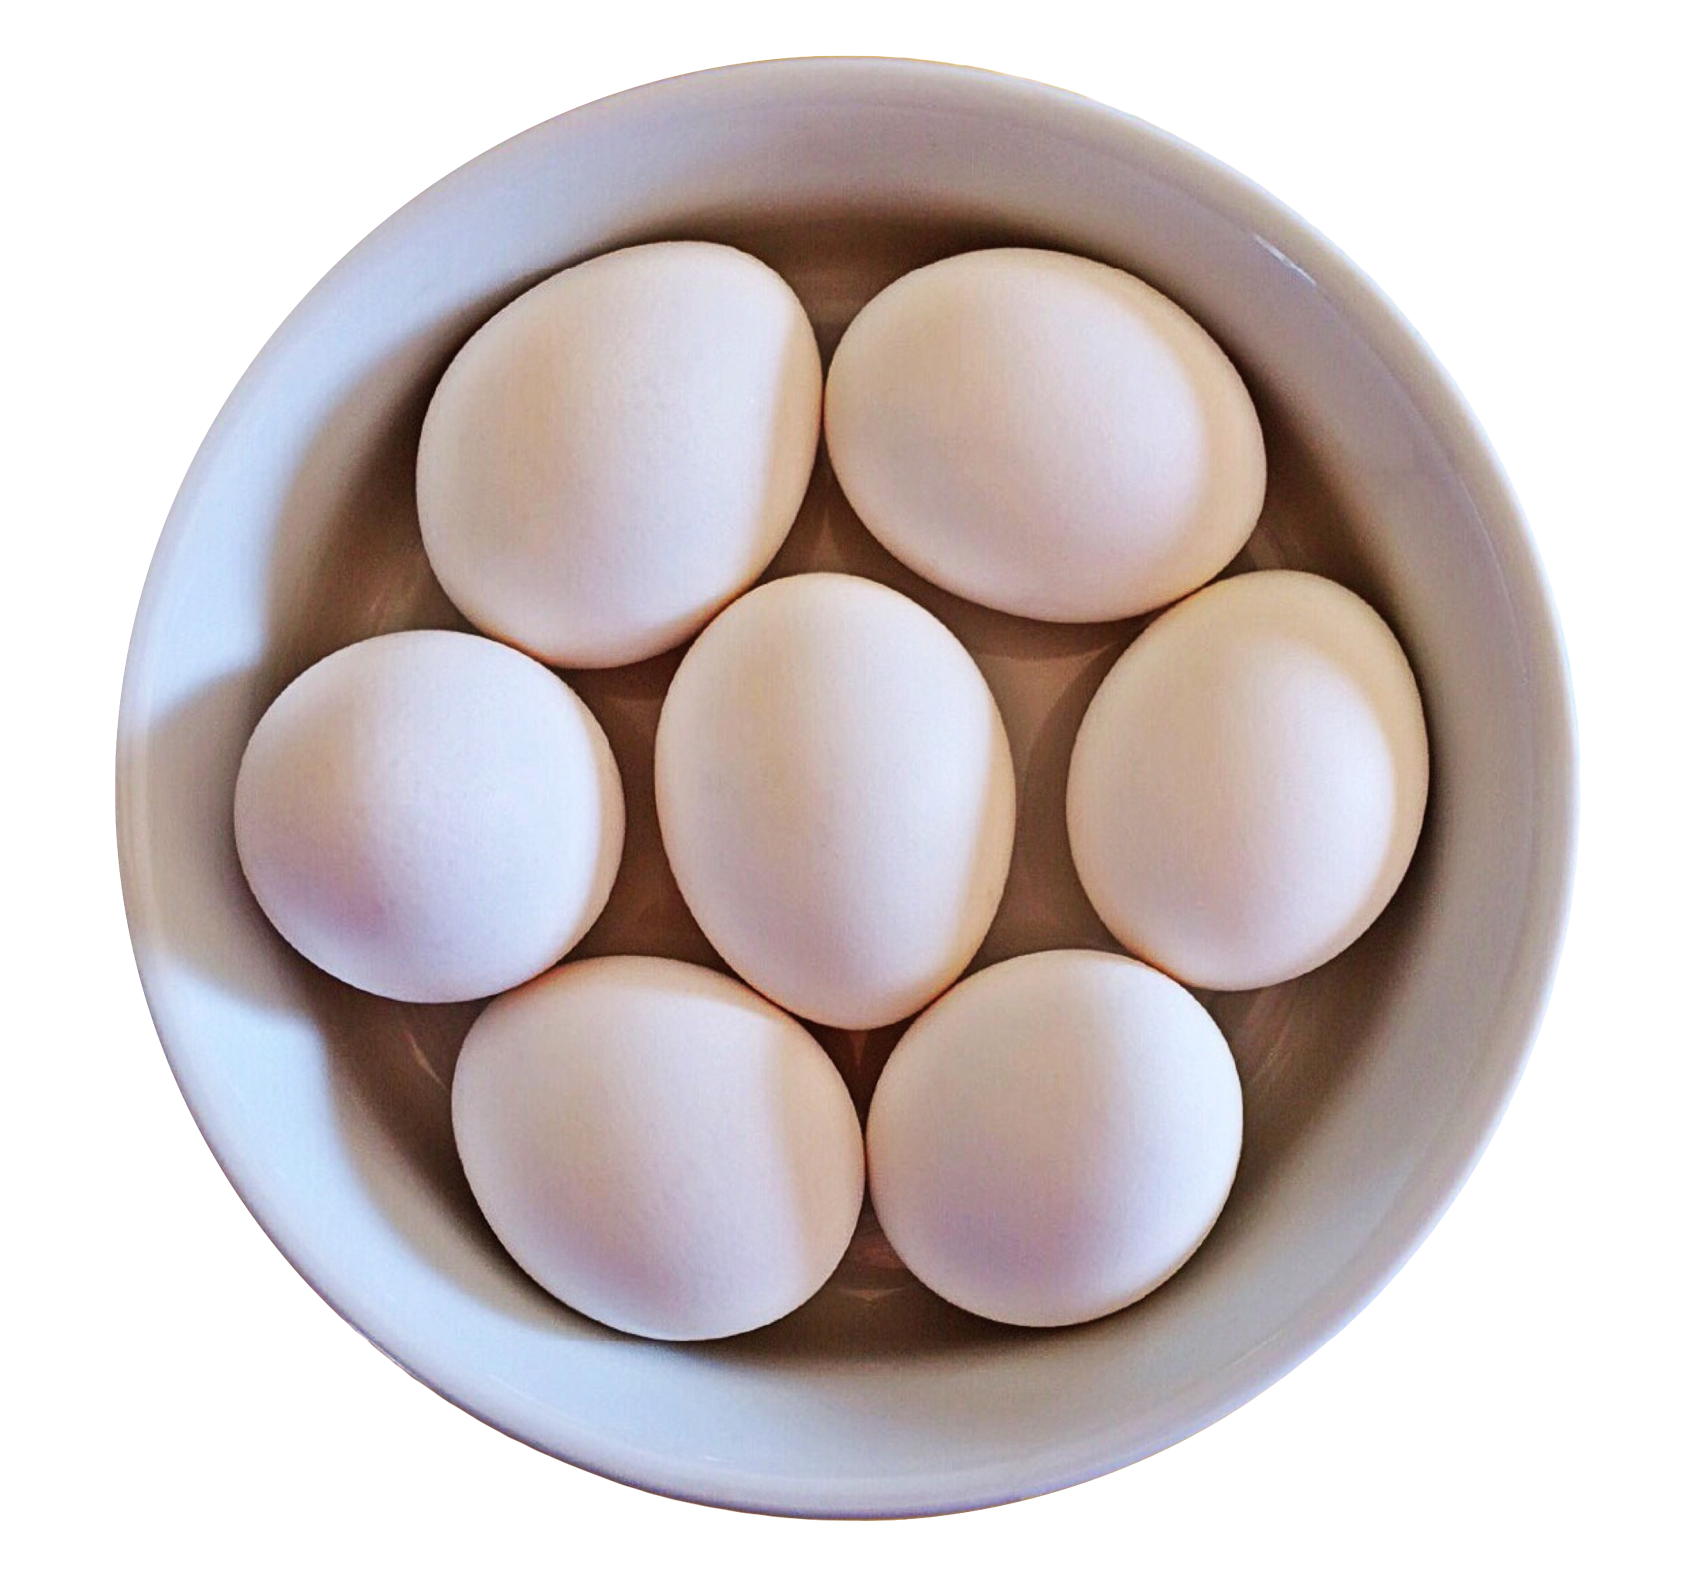 Eggs, White, Brown, Food, Bre